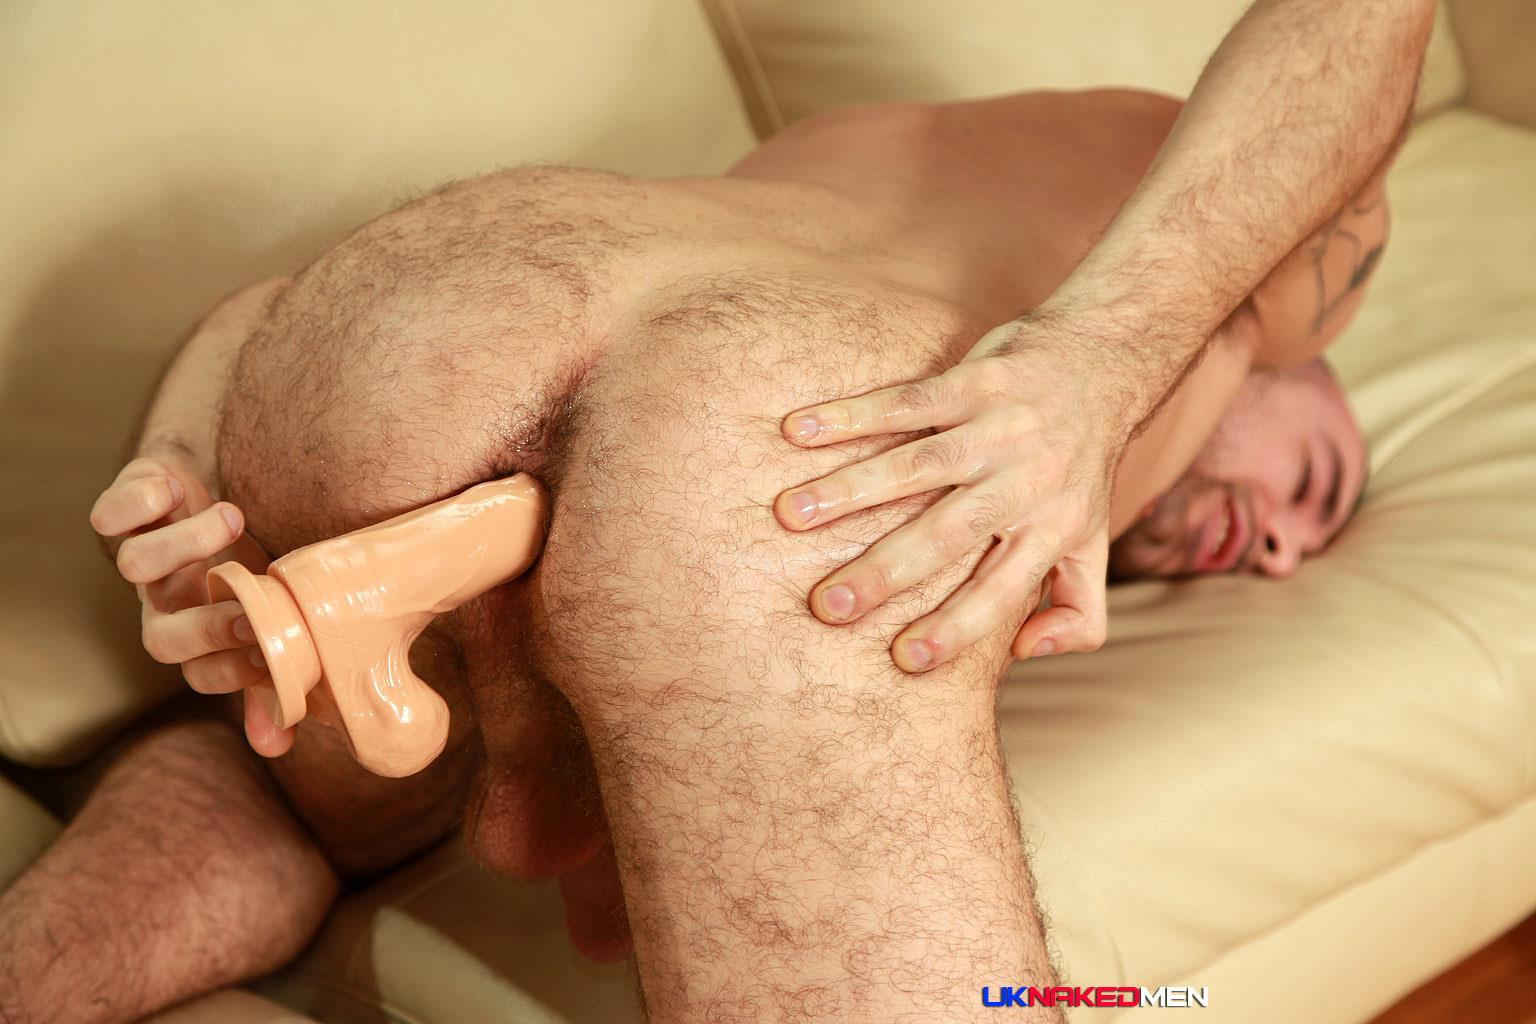 UK-Naked-Men-Sam-Syron-Irish-Guy-With-A-Big-Uncut-Cock-Jerk-Off-Amateur-Gay-Porn-16 Irish Guy With A Big Uncut Cock Sticks A Dildo In His Hairy Ass